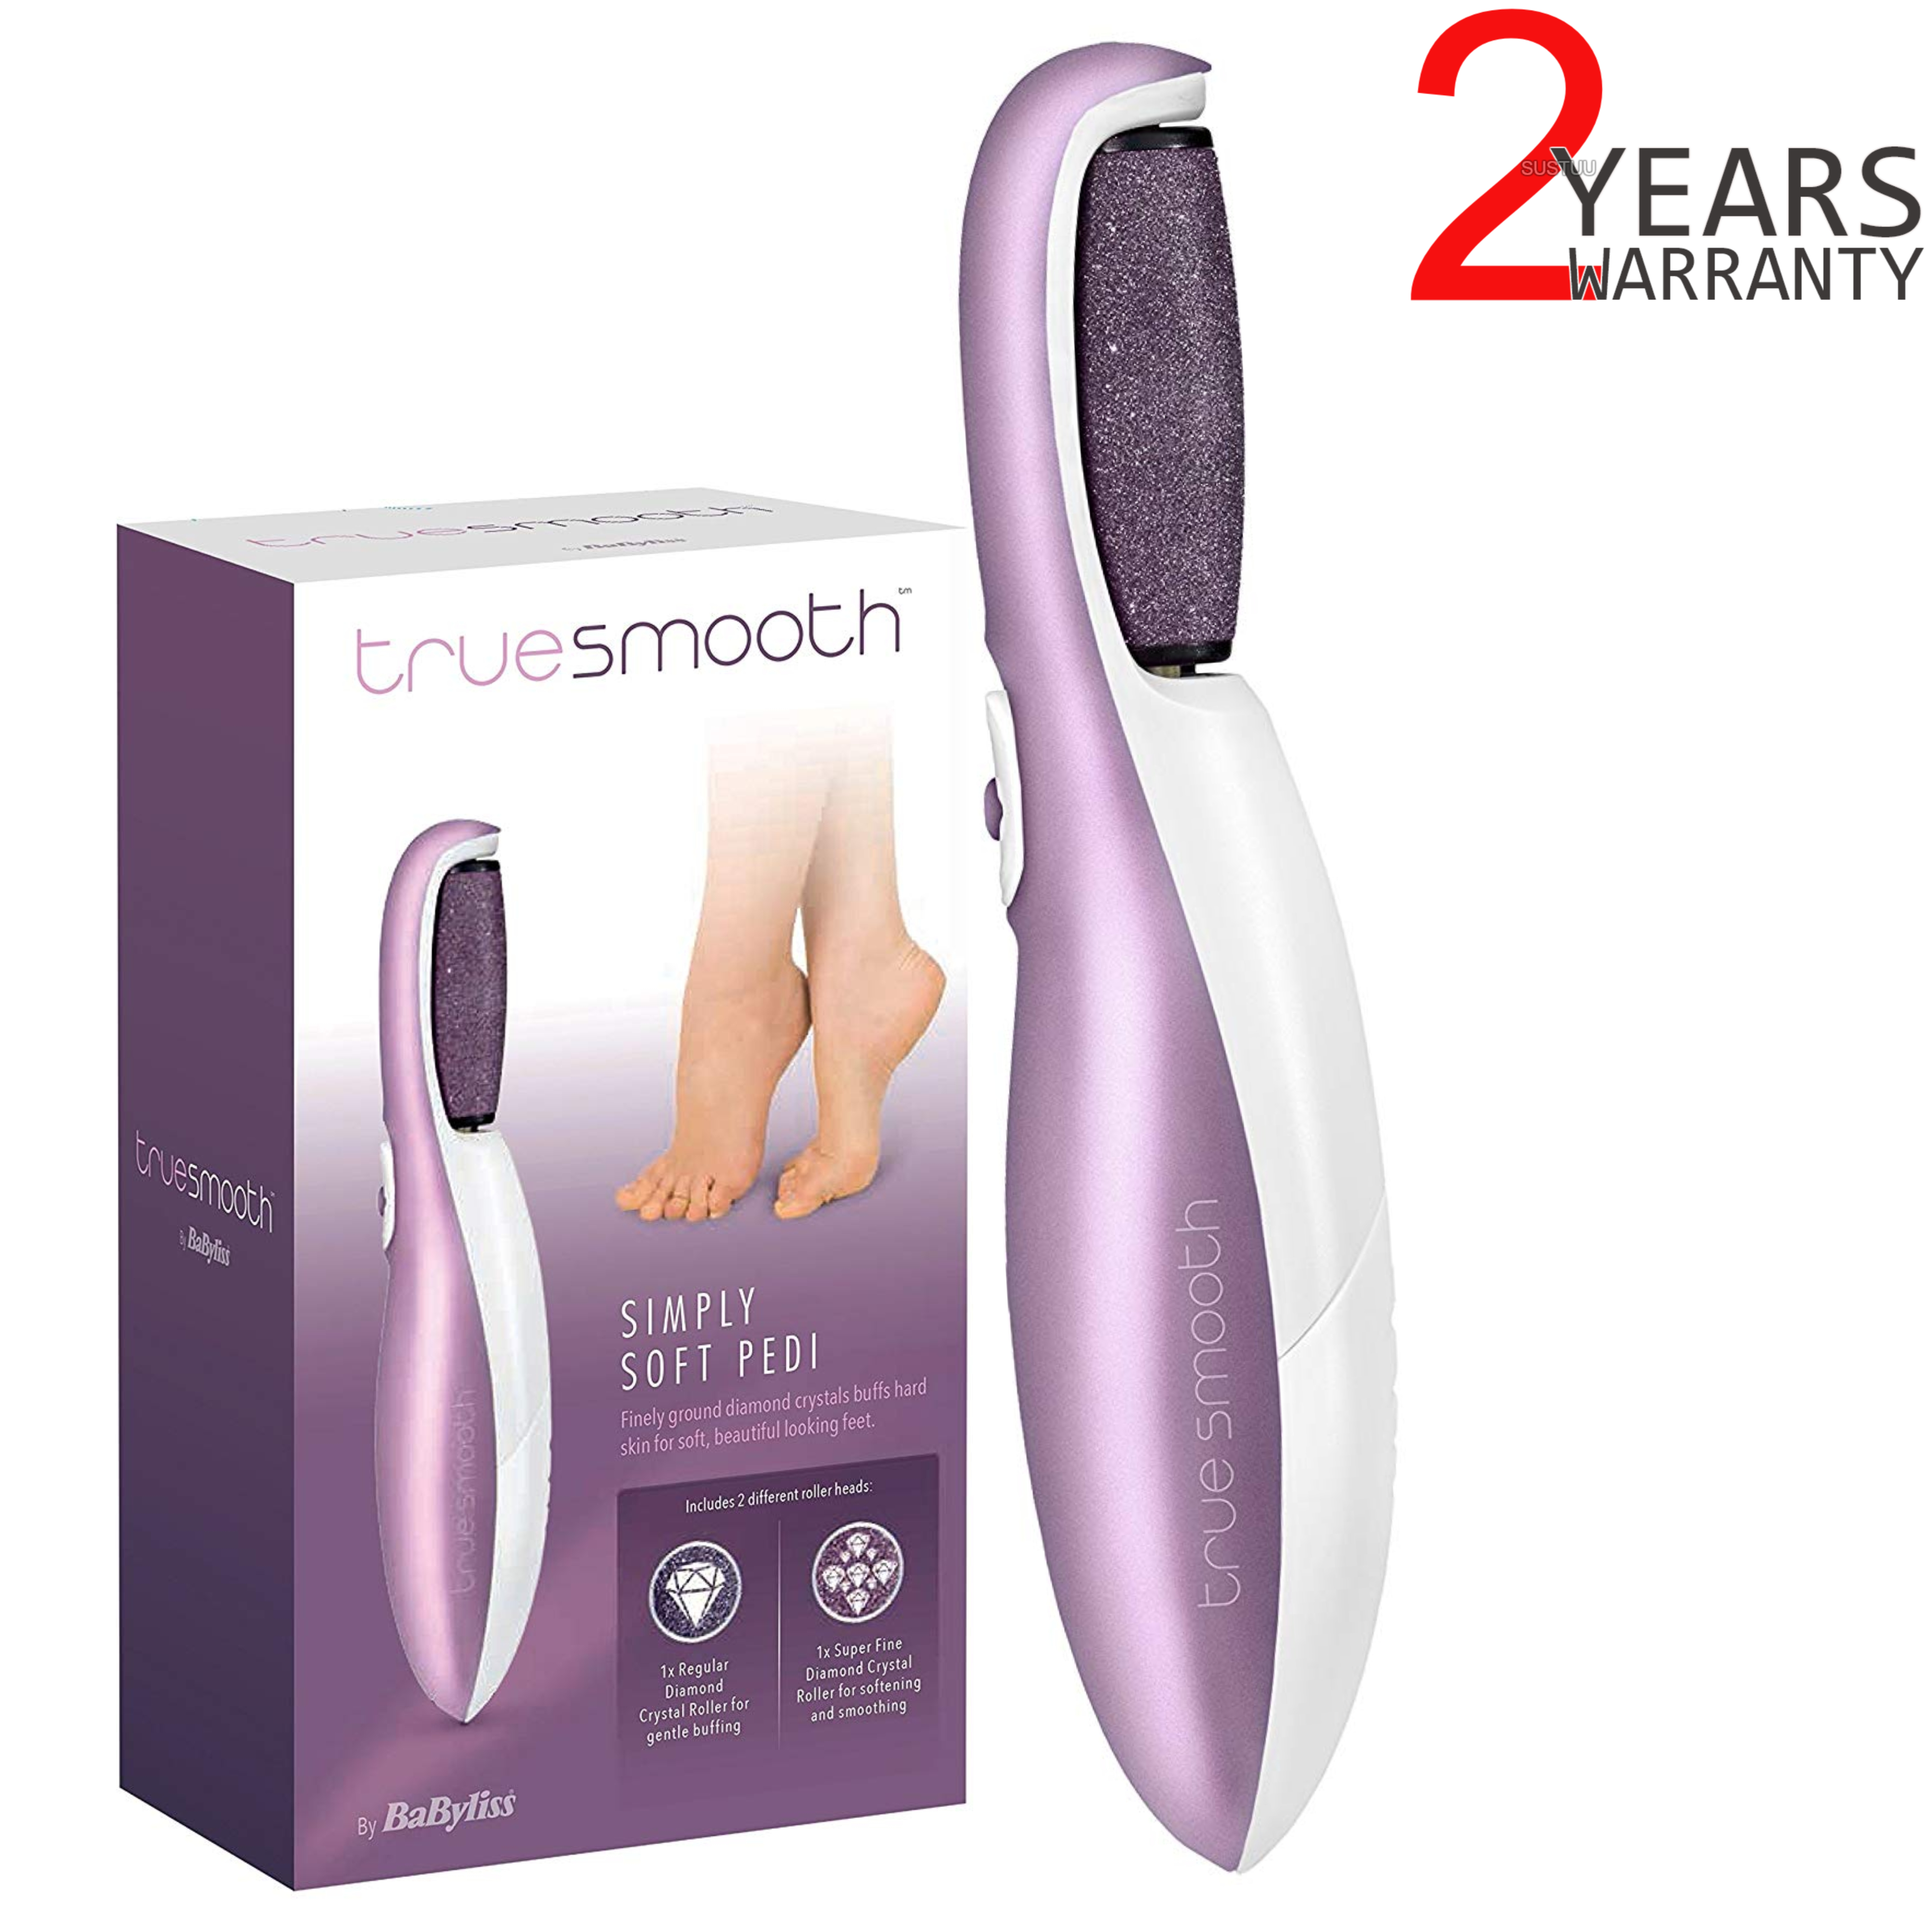 BaByliss Simply Soft Pedicure| Battery Operated| True Smooth| For Women| 8780U| New